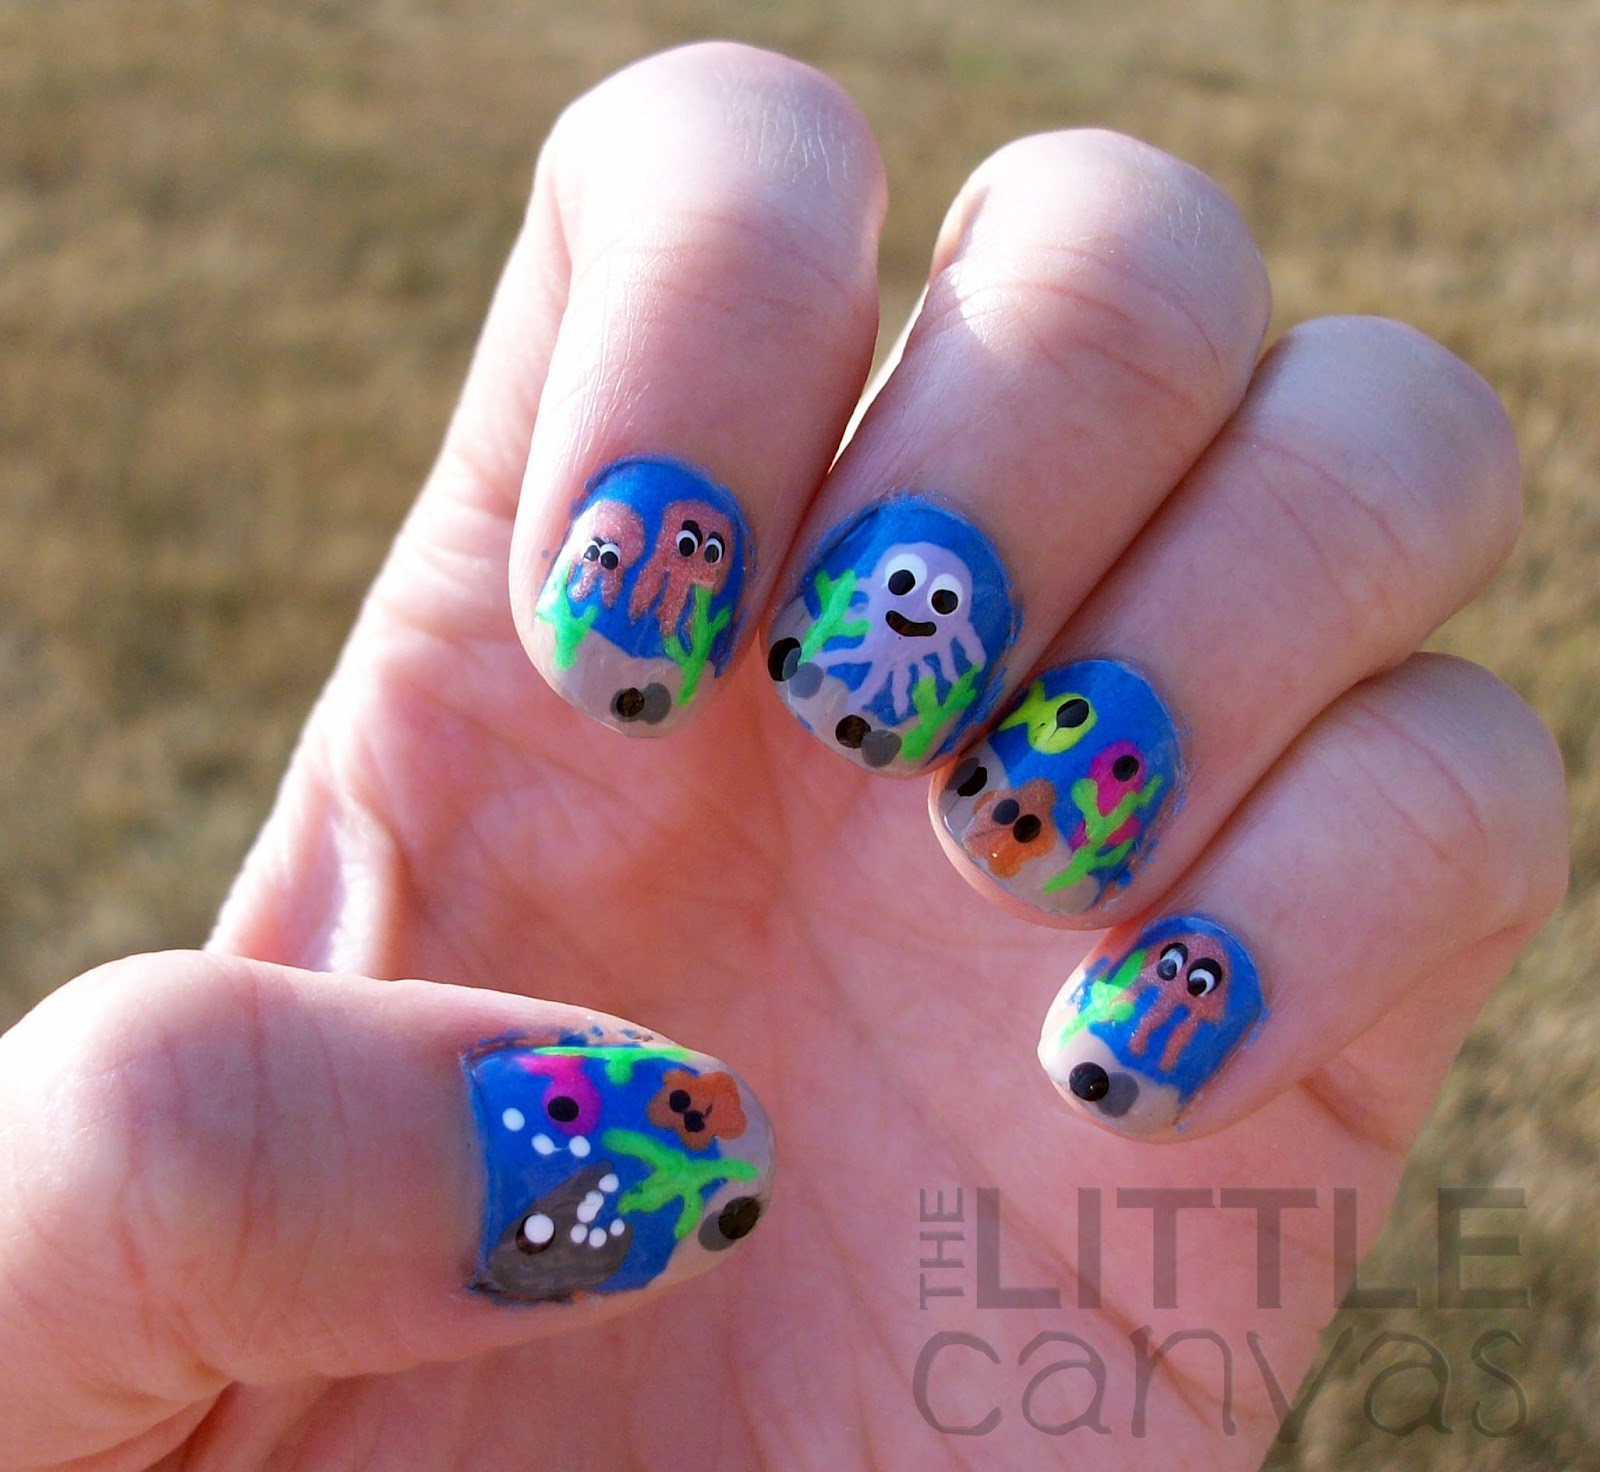 The Little Canvas: Under The Sea Nail Art